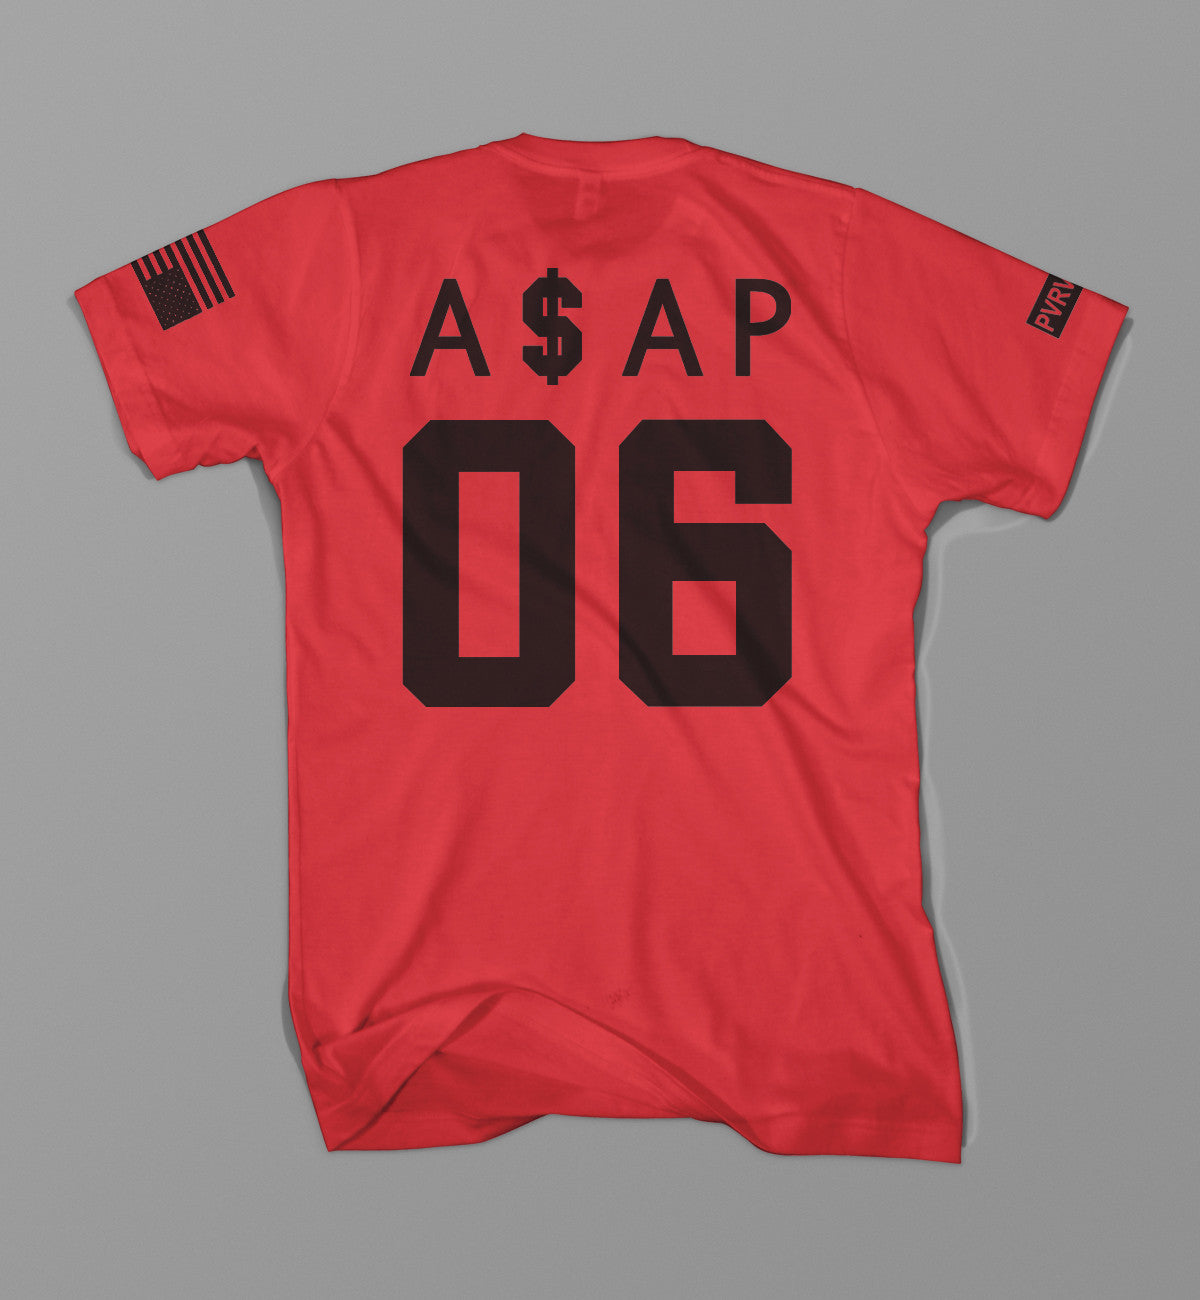 Product Features Long Life ASAP!Shirt is fitted, so order a size up for a loose fit.